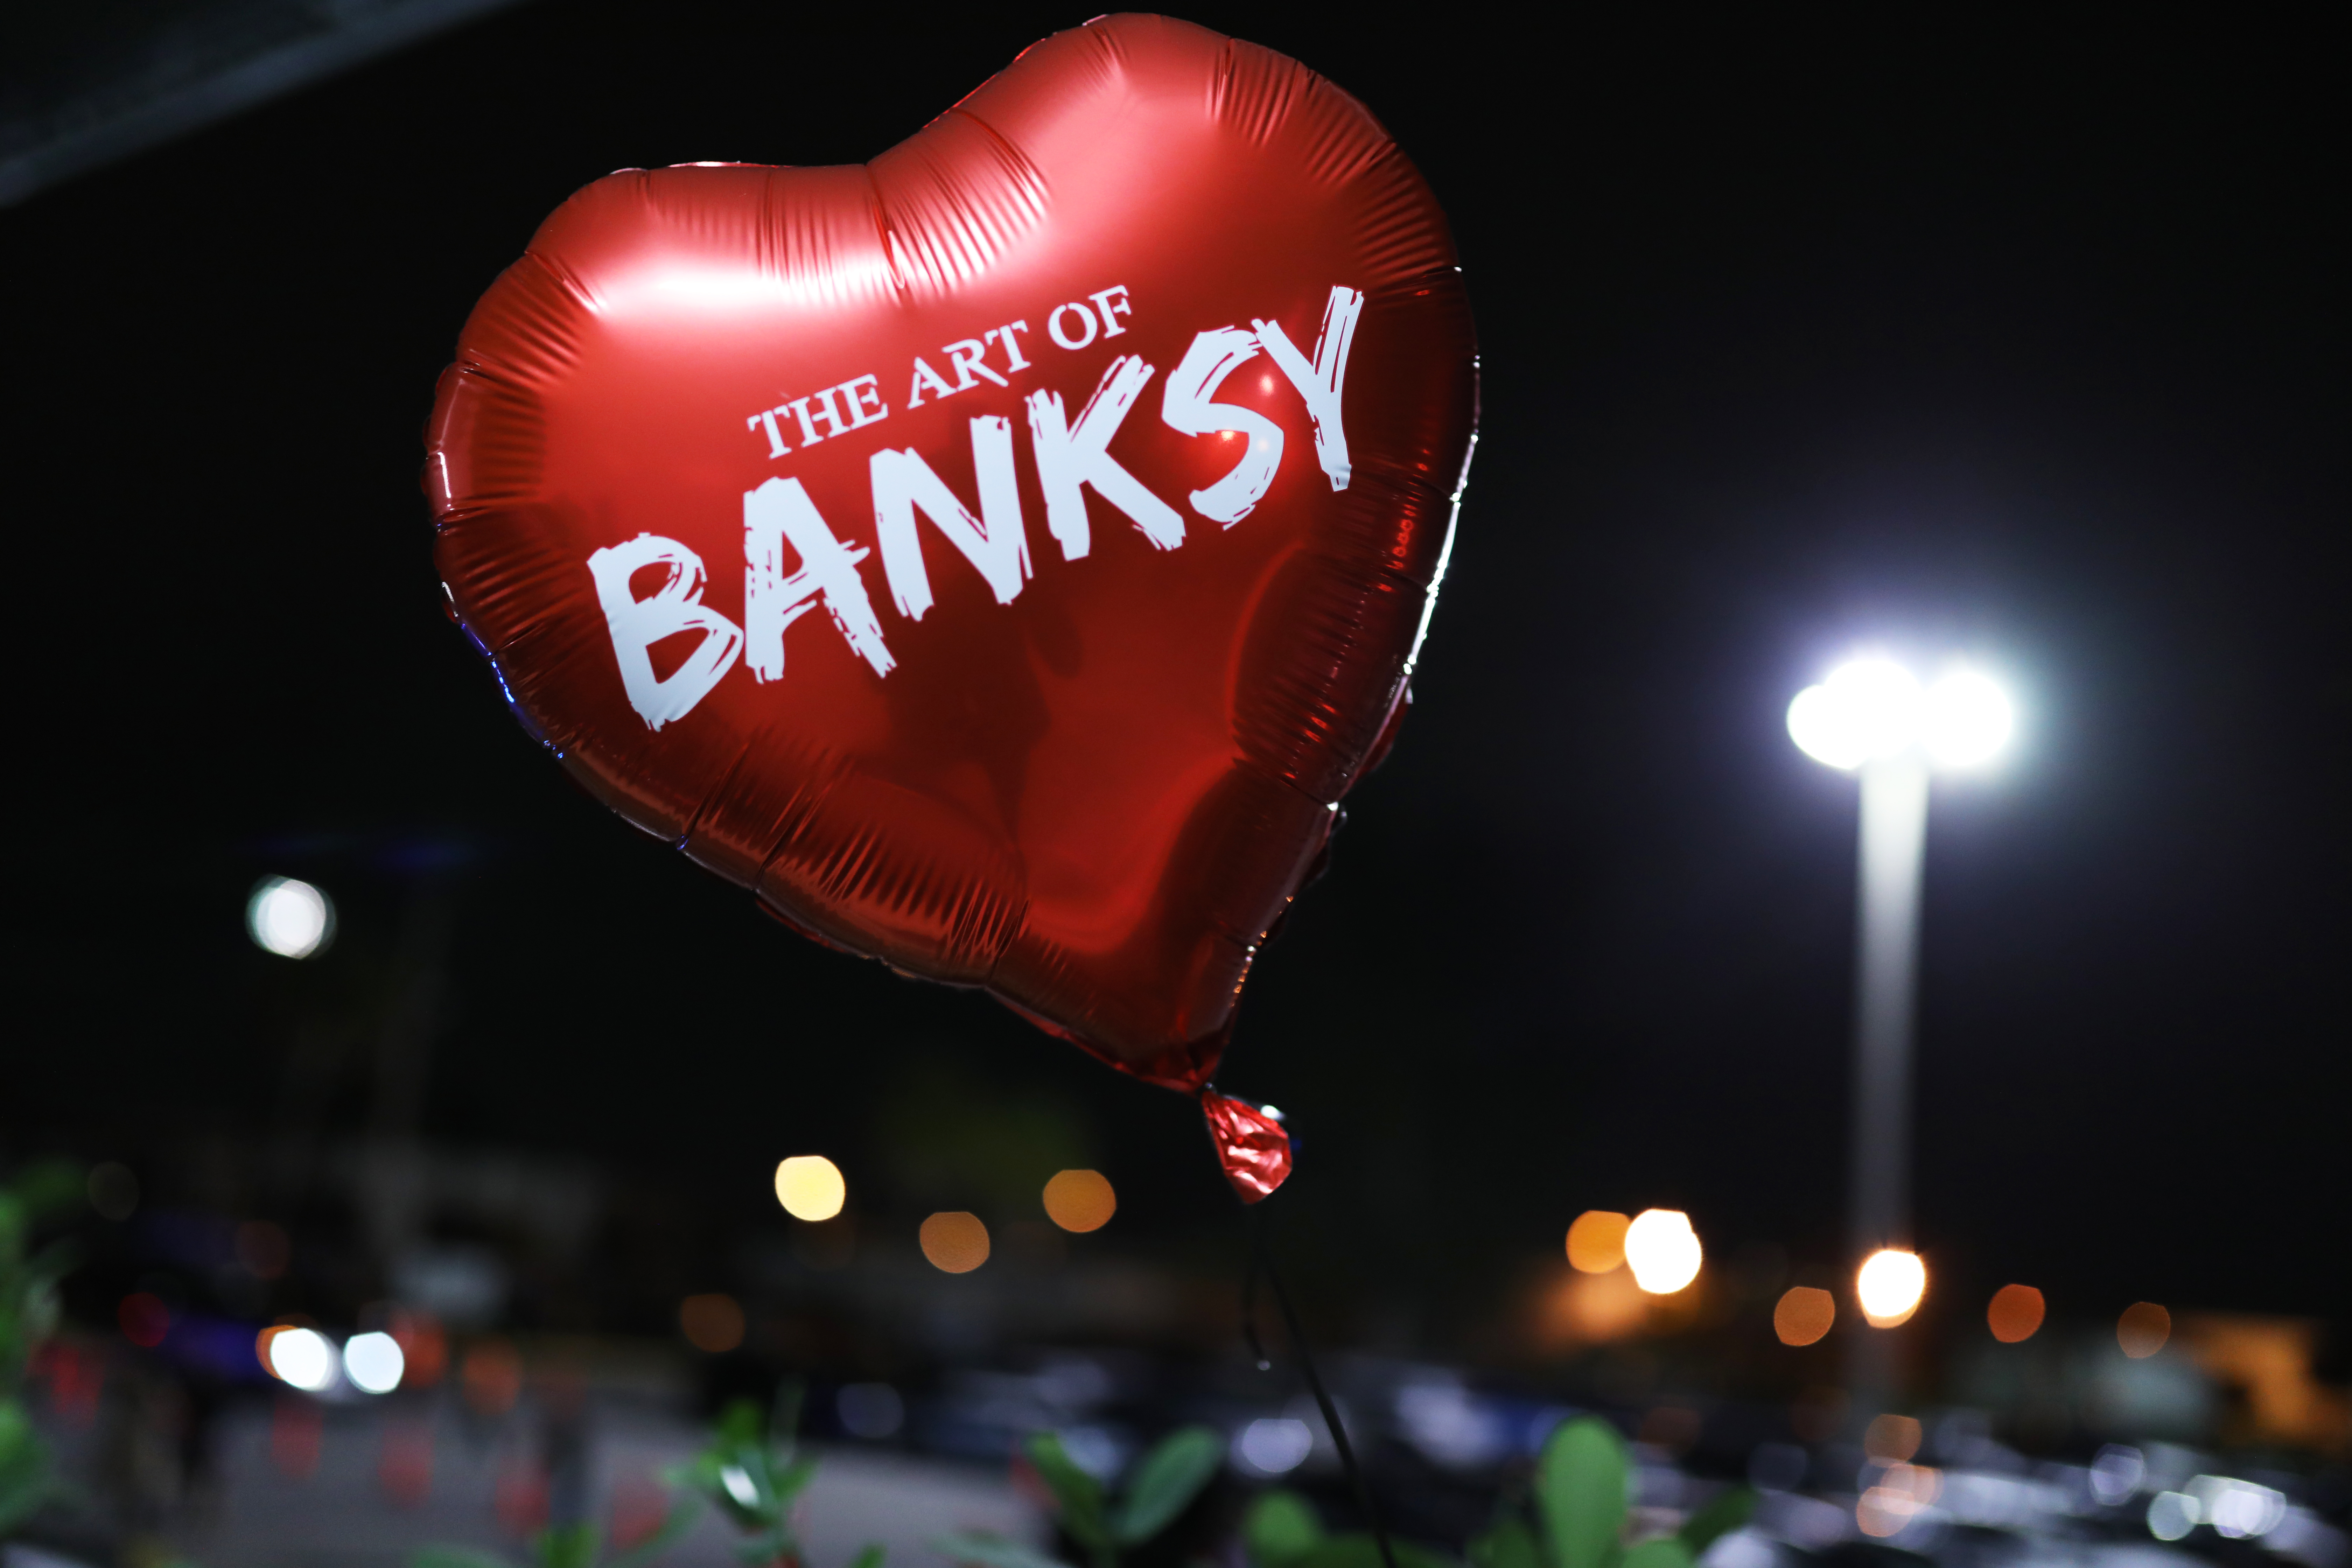 This Art Show Doesn't Have Banksy's Blessings — His Fans Don't Seem To Mind